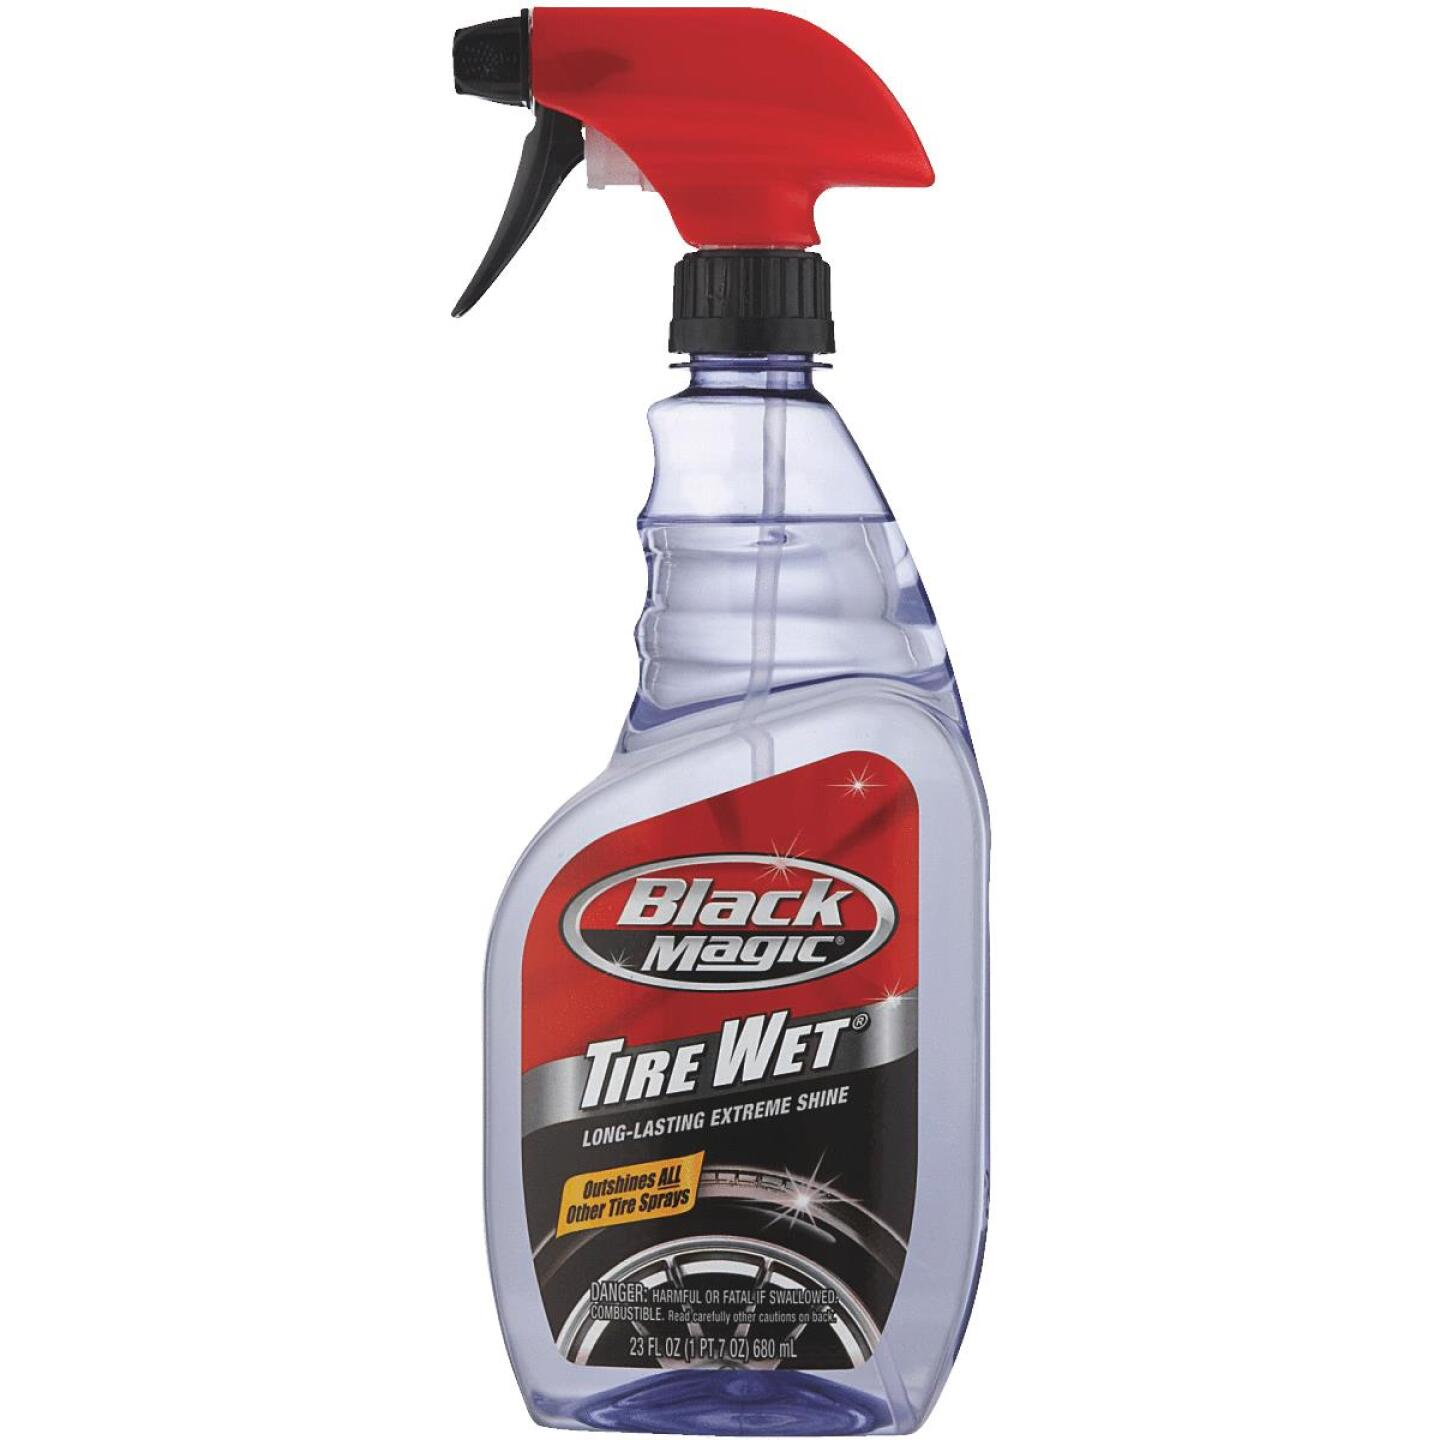 Black Magic 23 oz Trigger Spray Tire Cleaner Image 1